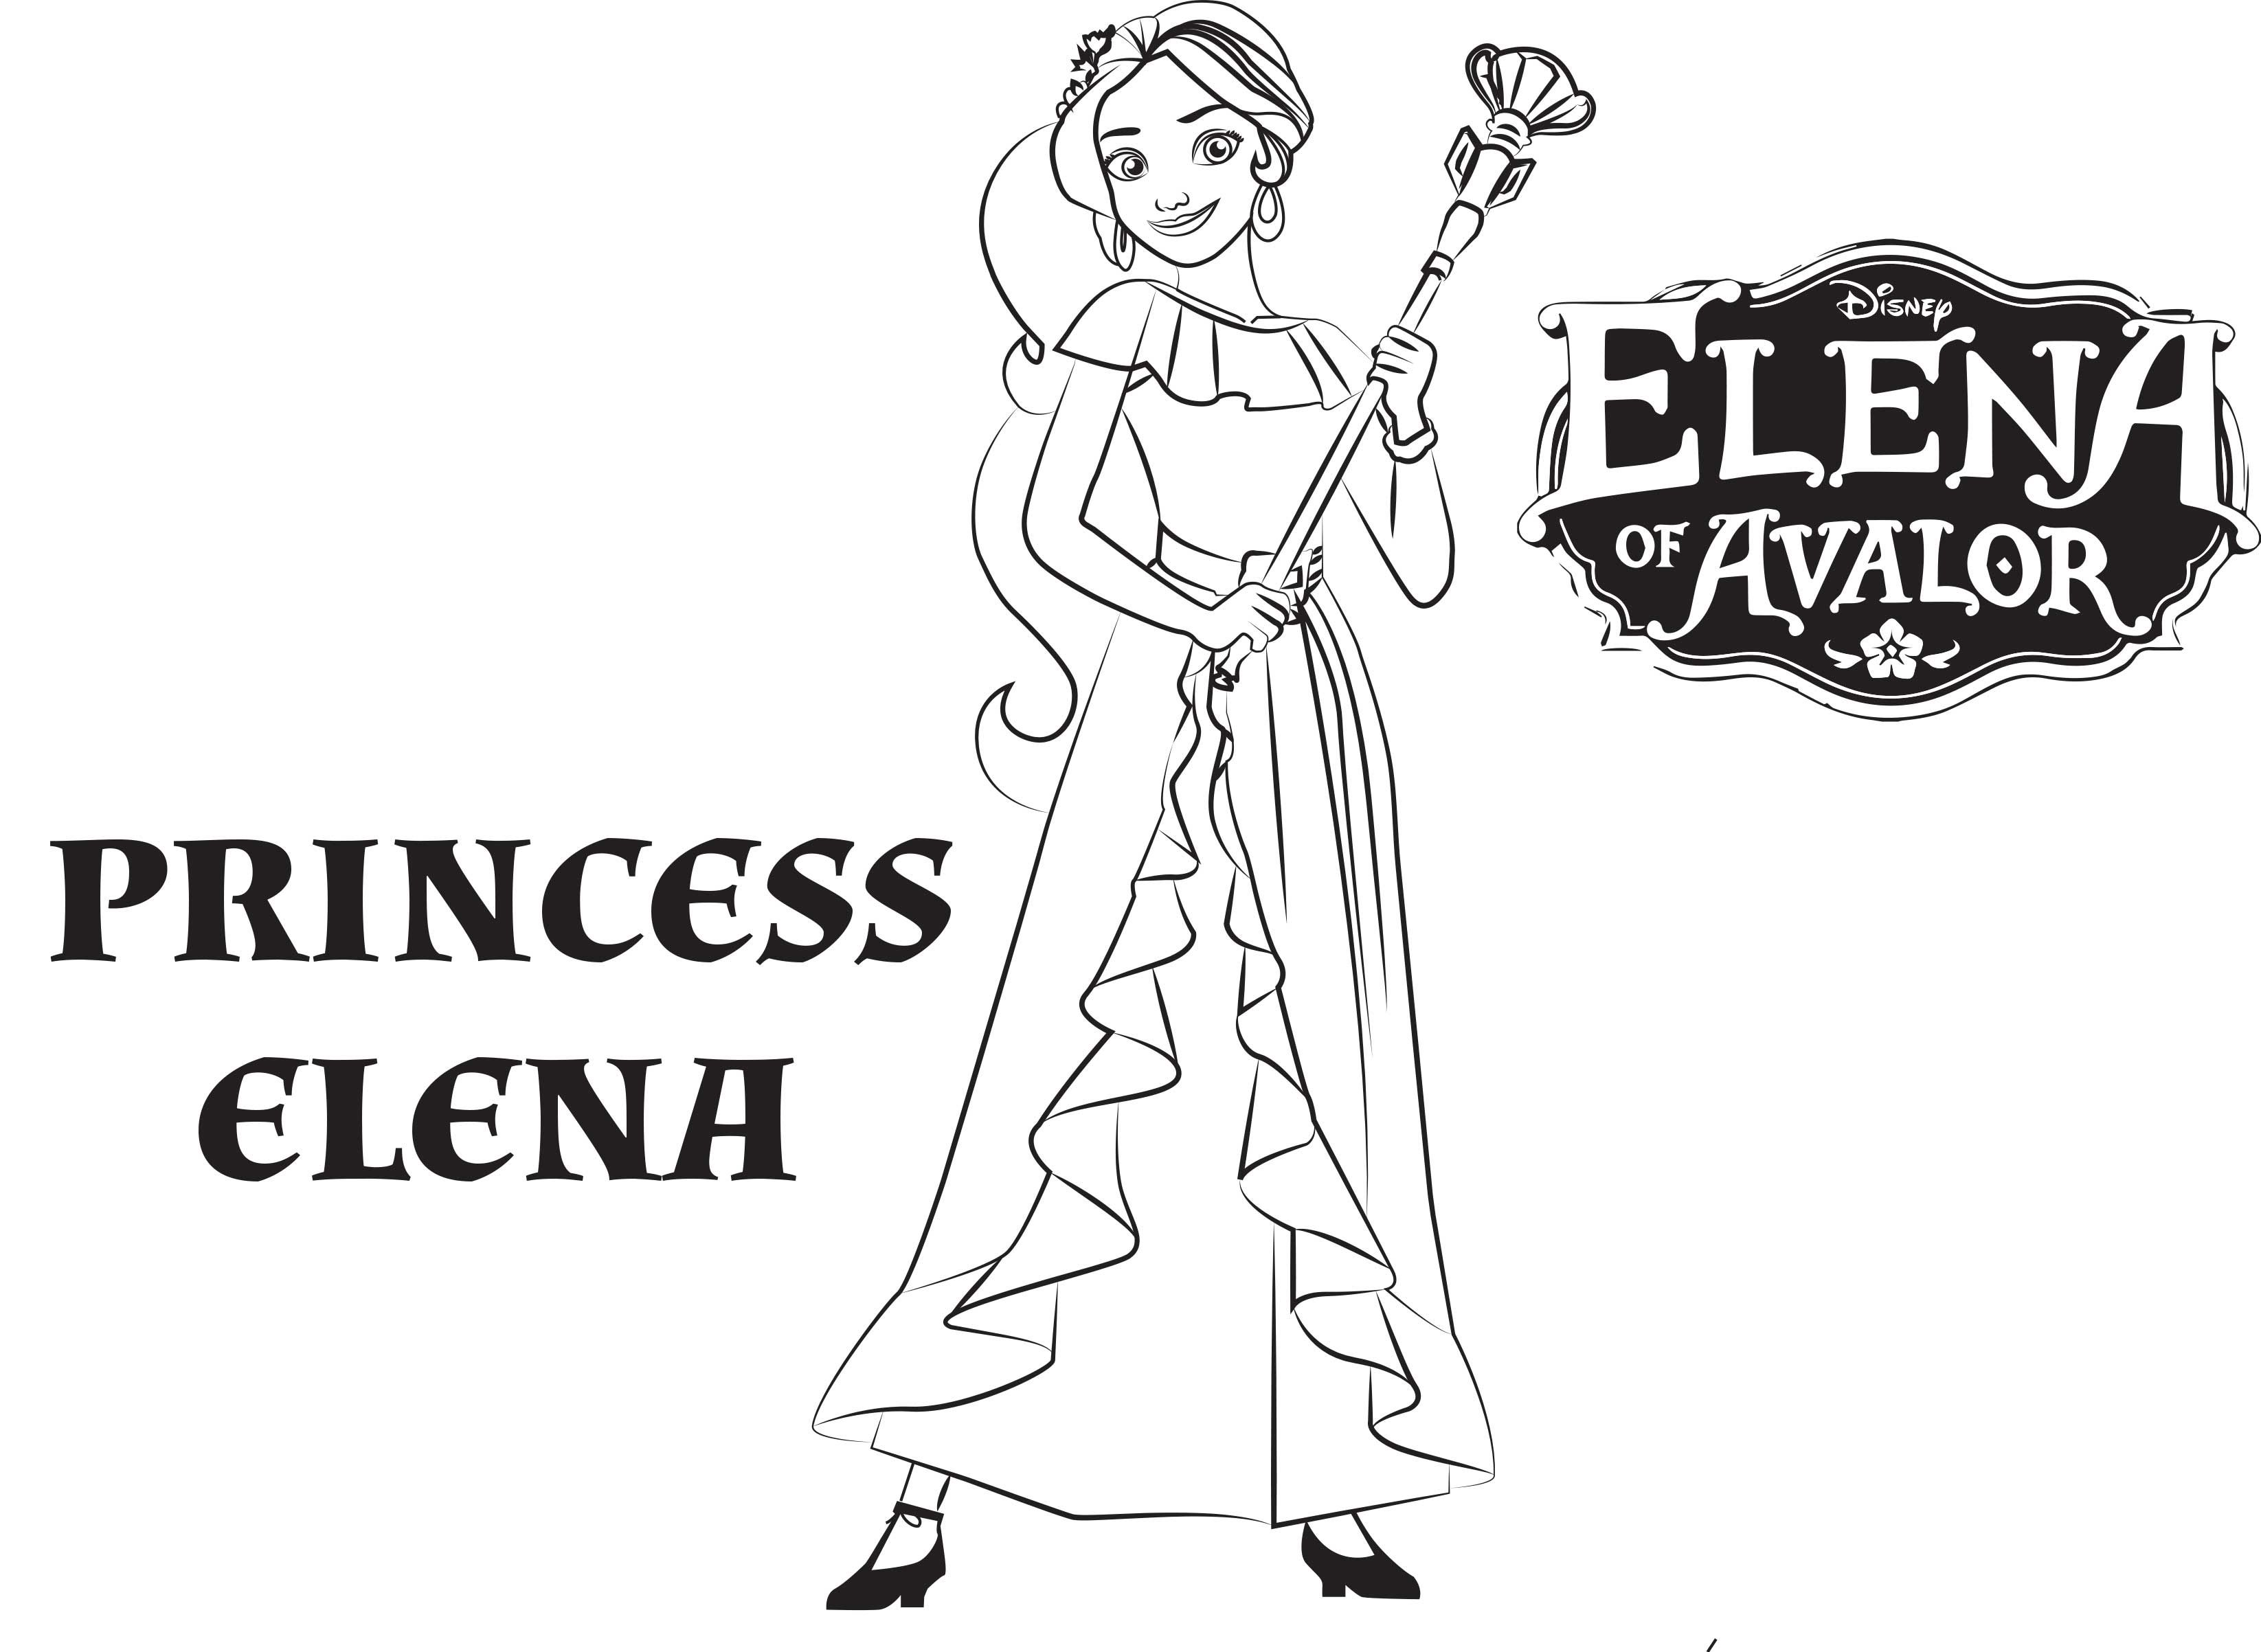 Elena Printable Coloring Pages Of Avalor Princess Coloring Pages Disney Coloring Pages Coloring Pages Inspirational